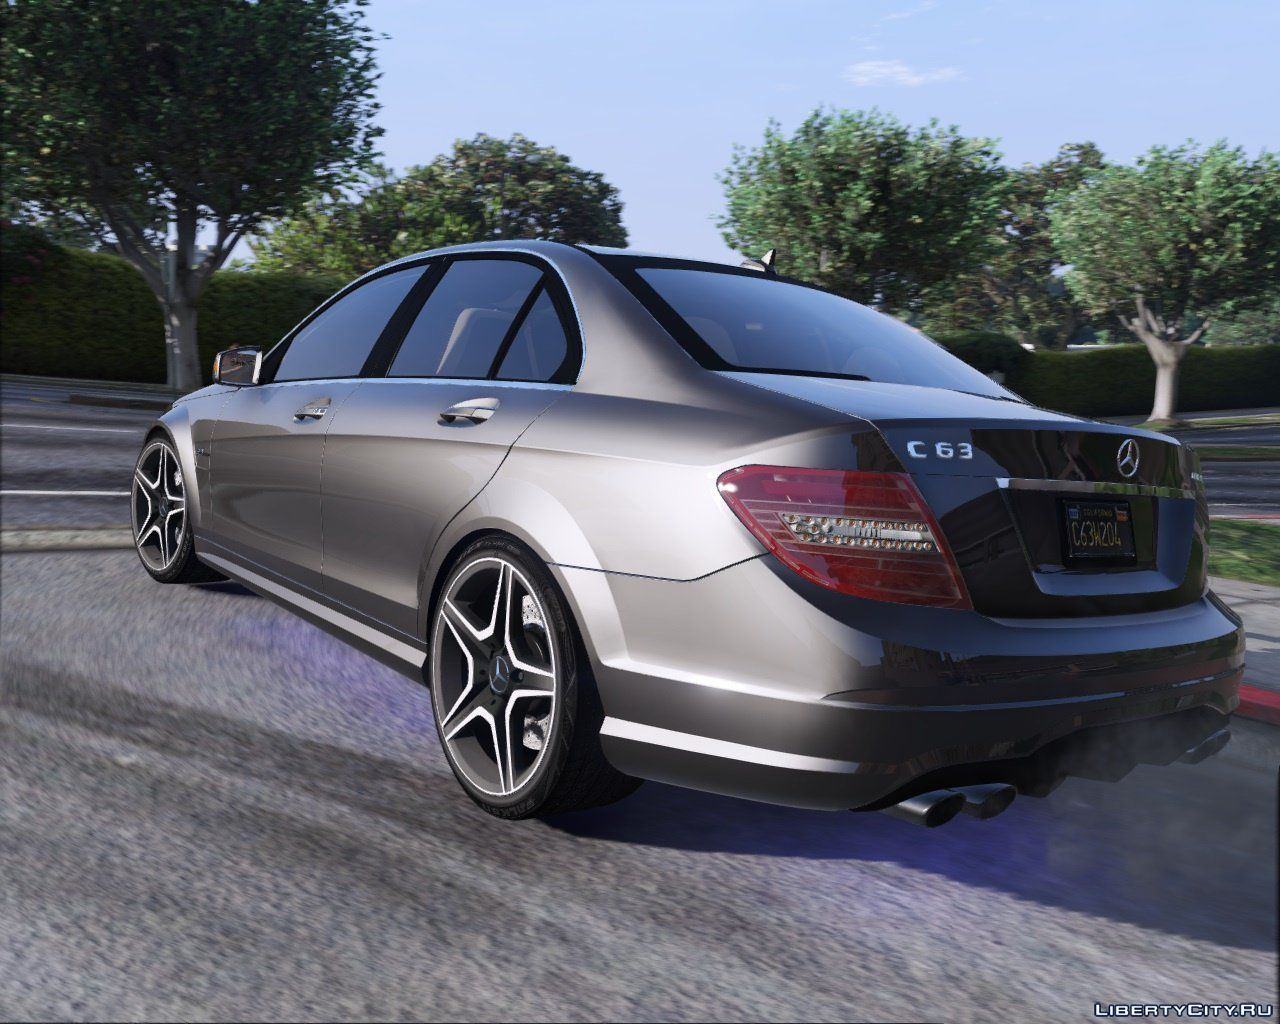 2014 mercedes benz c63 amg w204 add on replace tuning for Mercedes benz c63 amg 2014